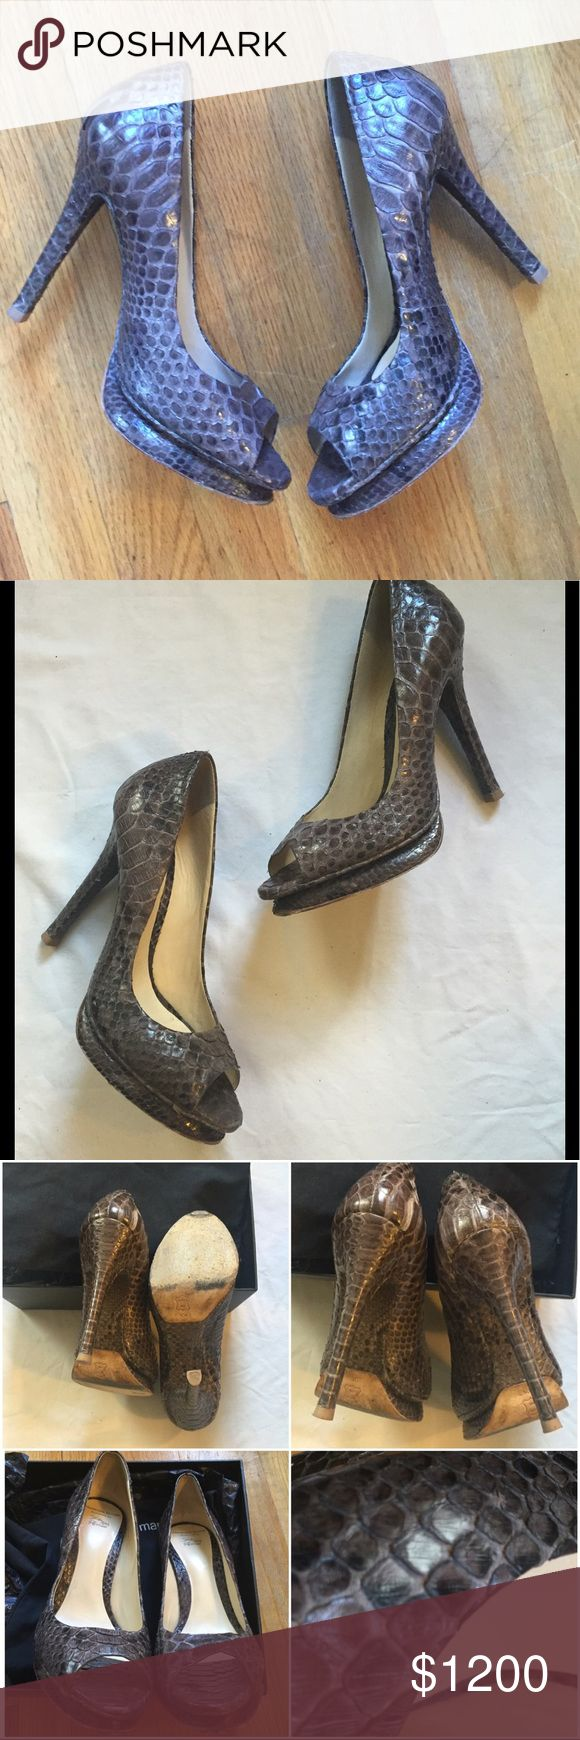 Salto Meia Pata 🆕Python Platform Pumps Alexandre Birman's Salto Meia Pata Python Platform Pumps in Storm. Size 39.5 🚫NO OFFERS🚫 CAN NOT SHIP TO CALIFORNIA Alexandre Birman Shoes Platforms